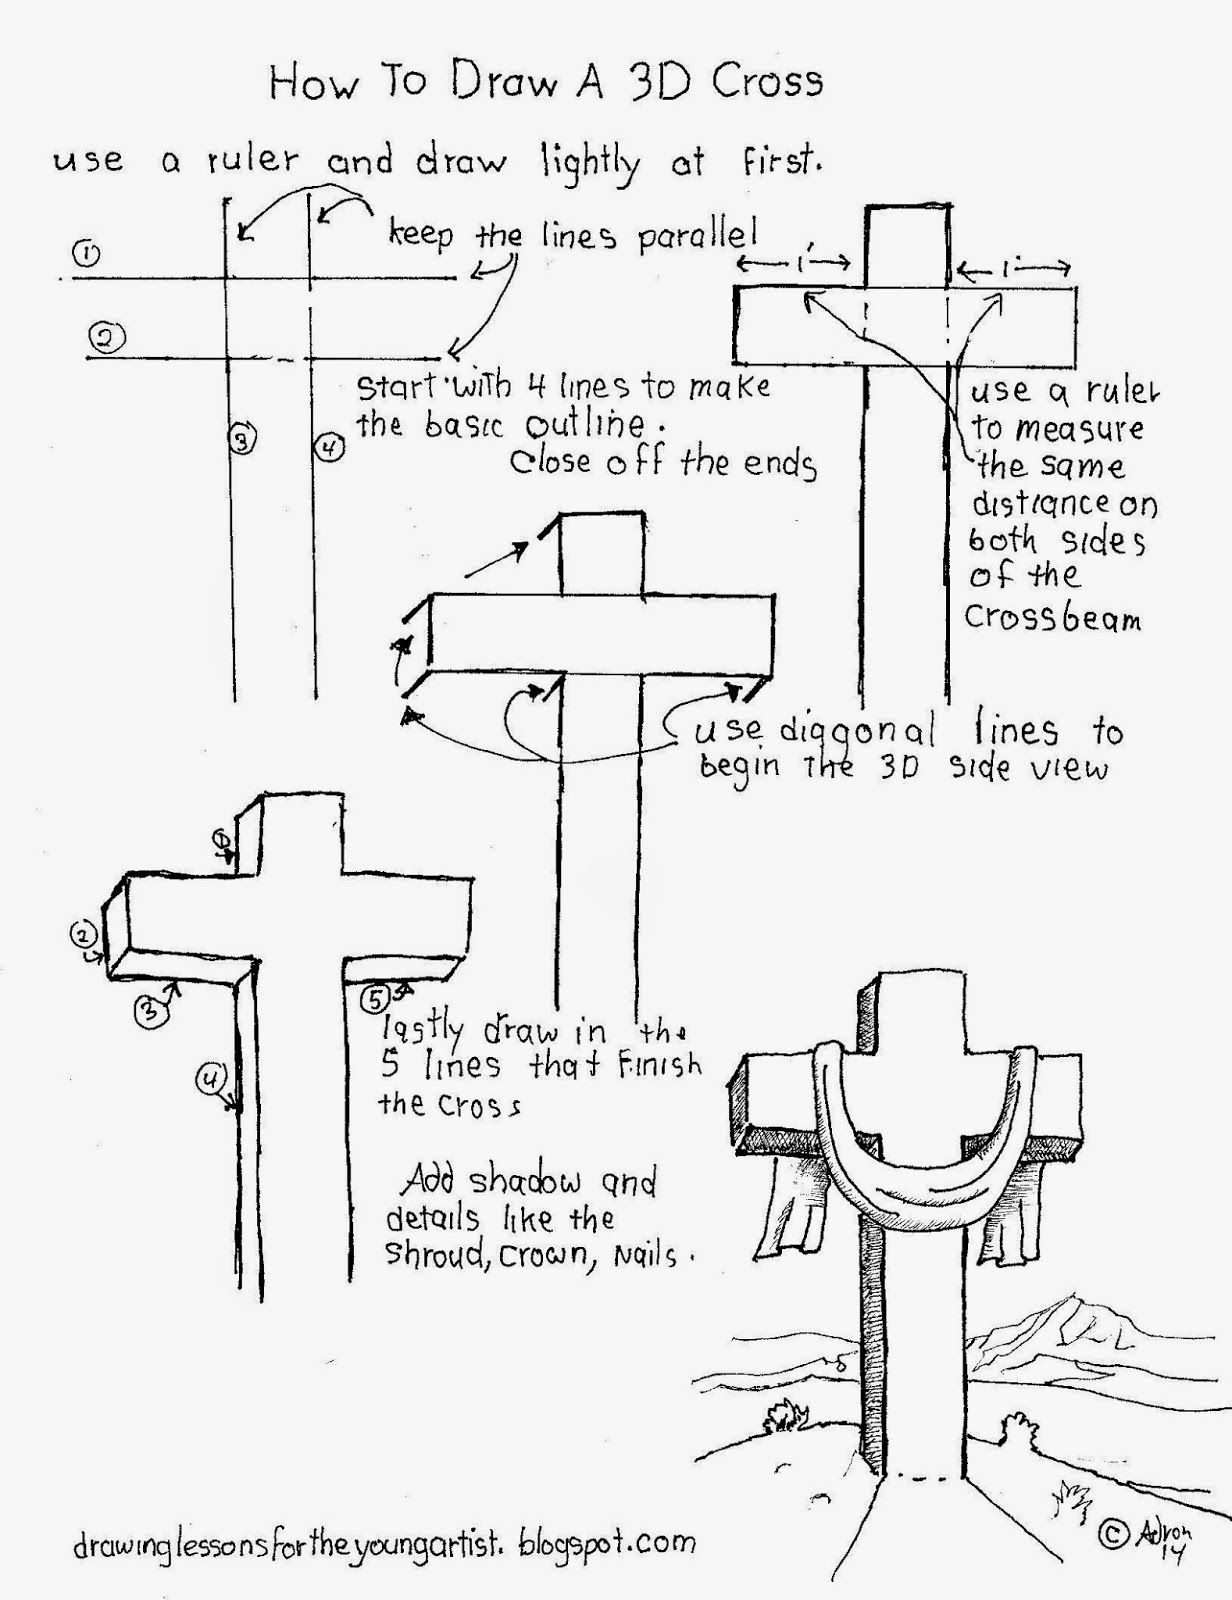 How To Draw Worksheets For The Young Artist How To Draw A 3d Cross Christian Worksheet